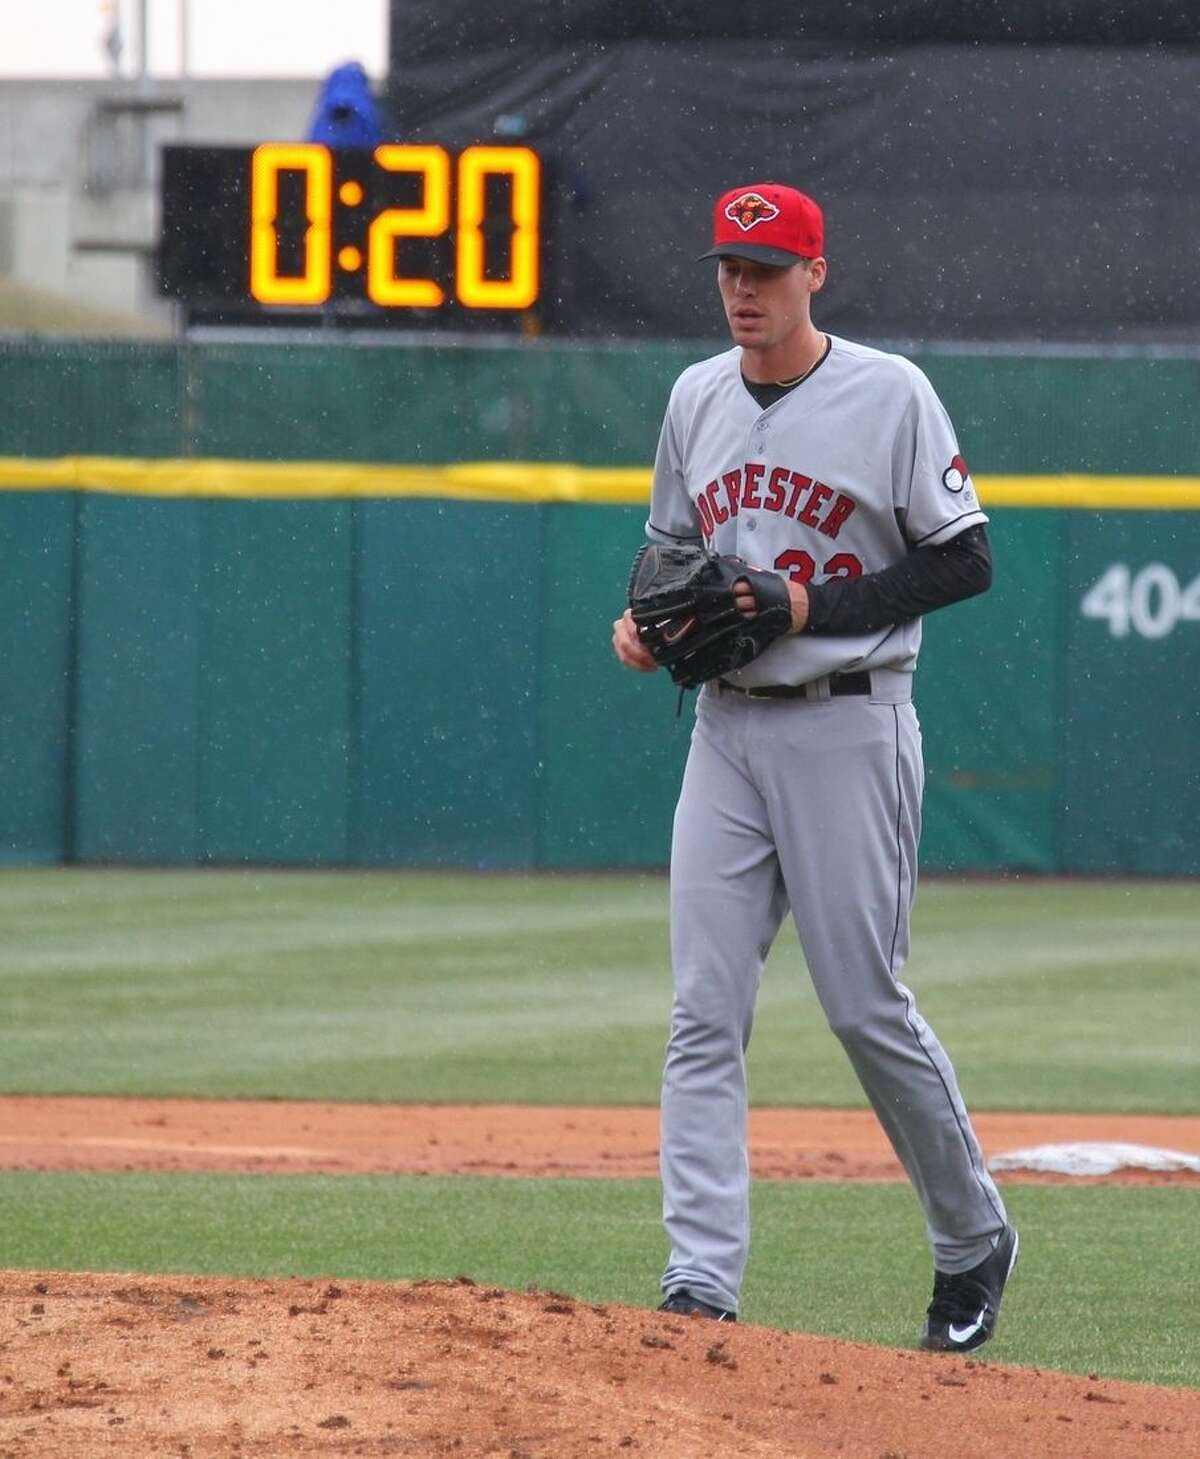 Rochester Red Wings pitcher Alex Meyer (32) walks to the mound as a 20-second pitch clock is used for the Triple-A baseball opener between the Buffalo Bisons and Red Wings in Buffalo, N.Y., Thursday, April 9, 2015. (AP Photo/Bill Wippert)